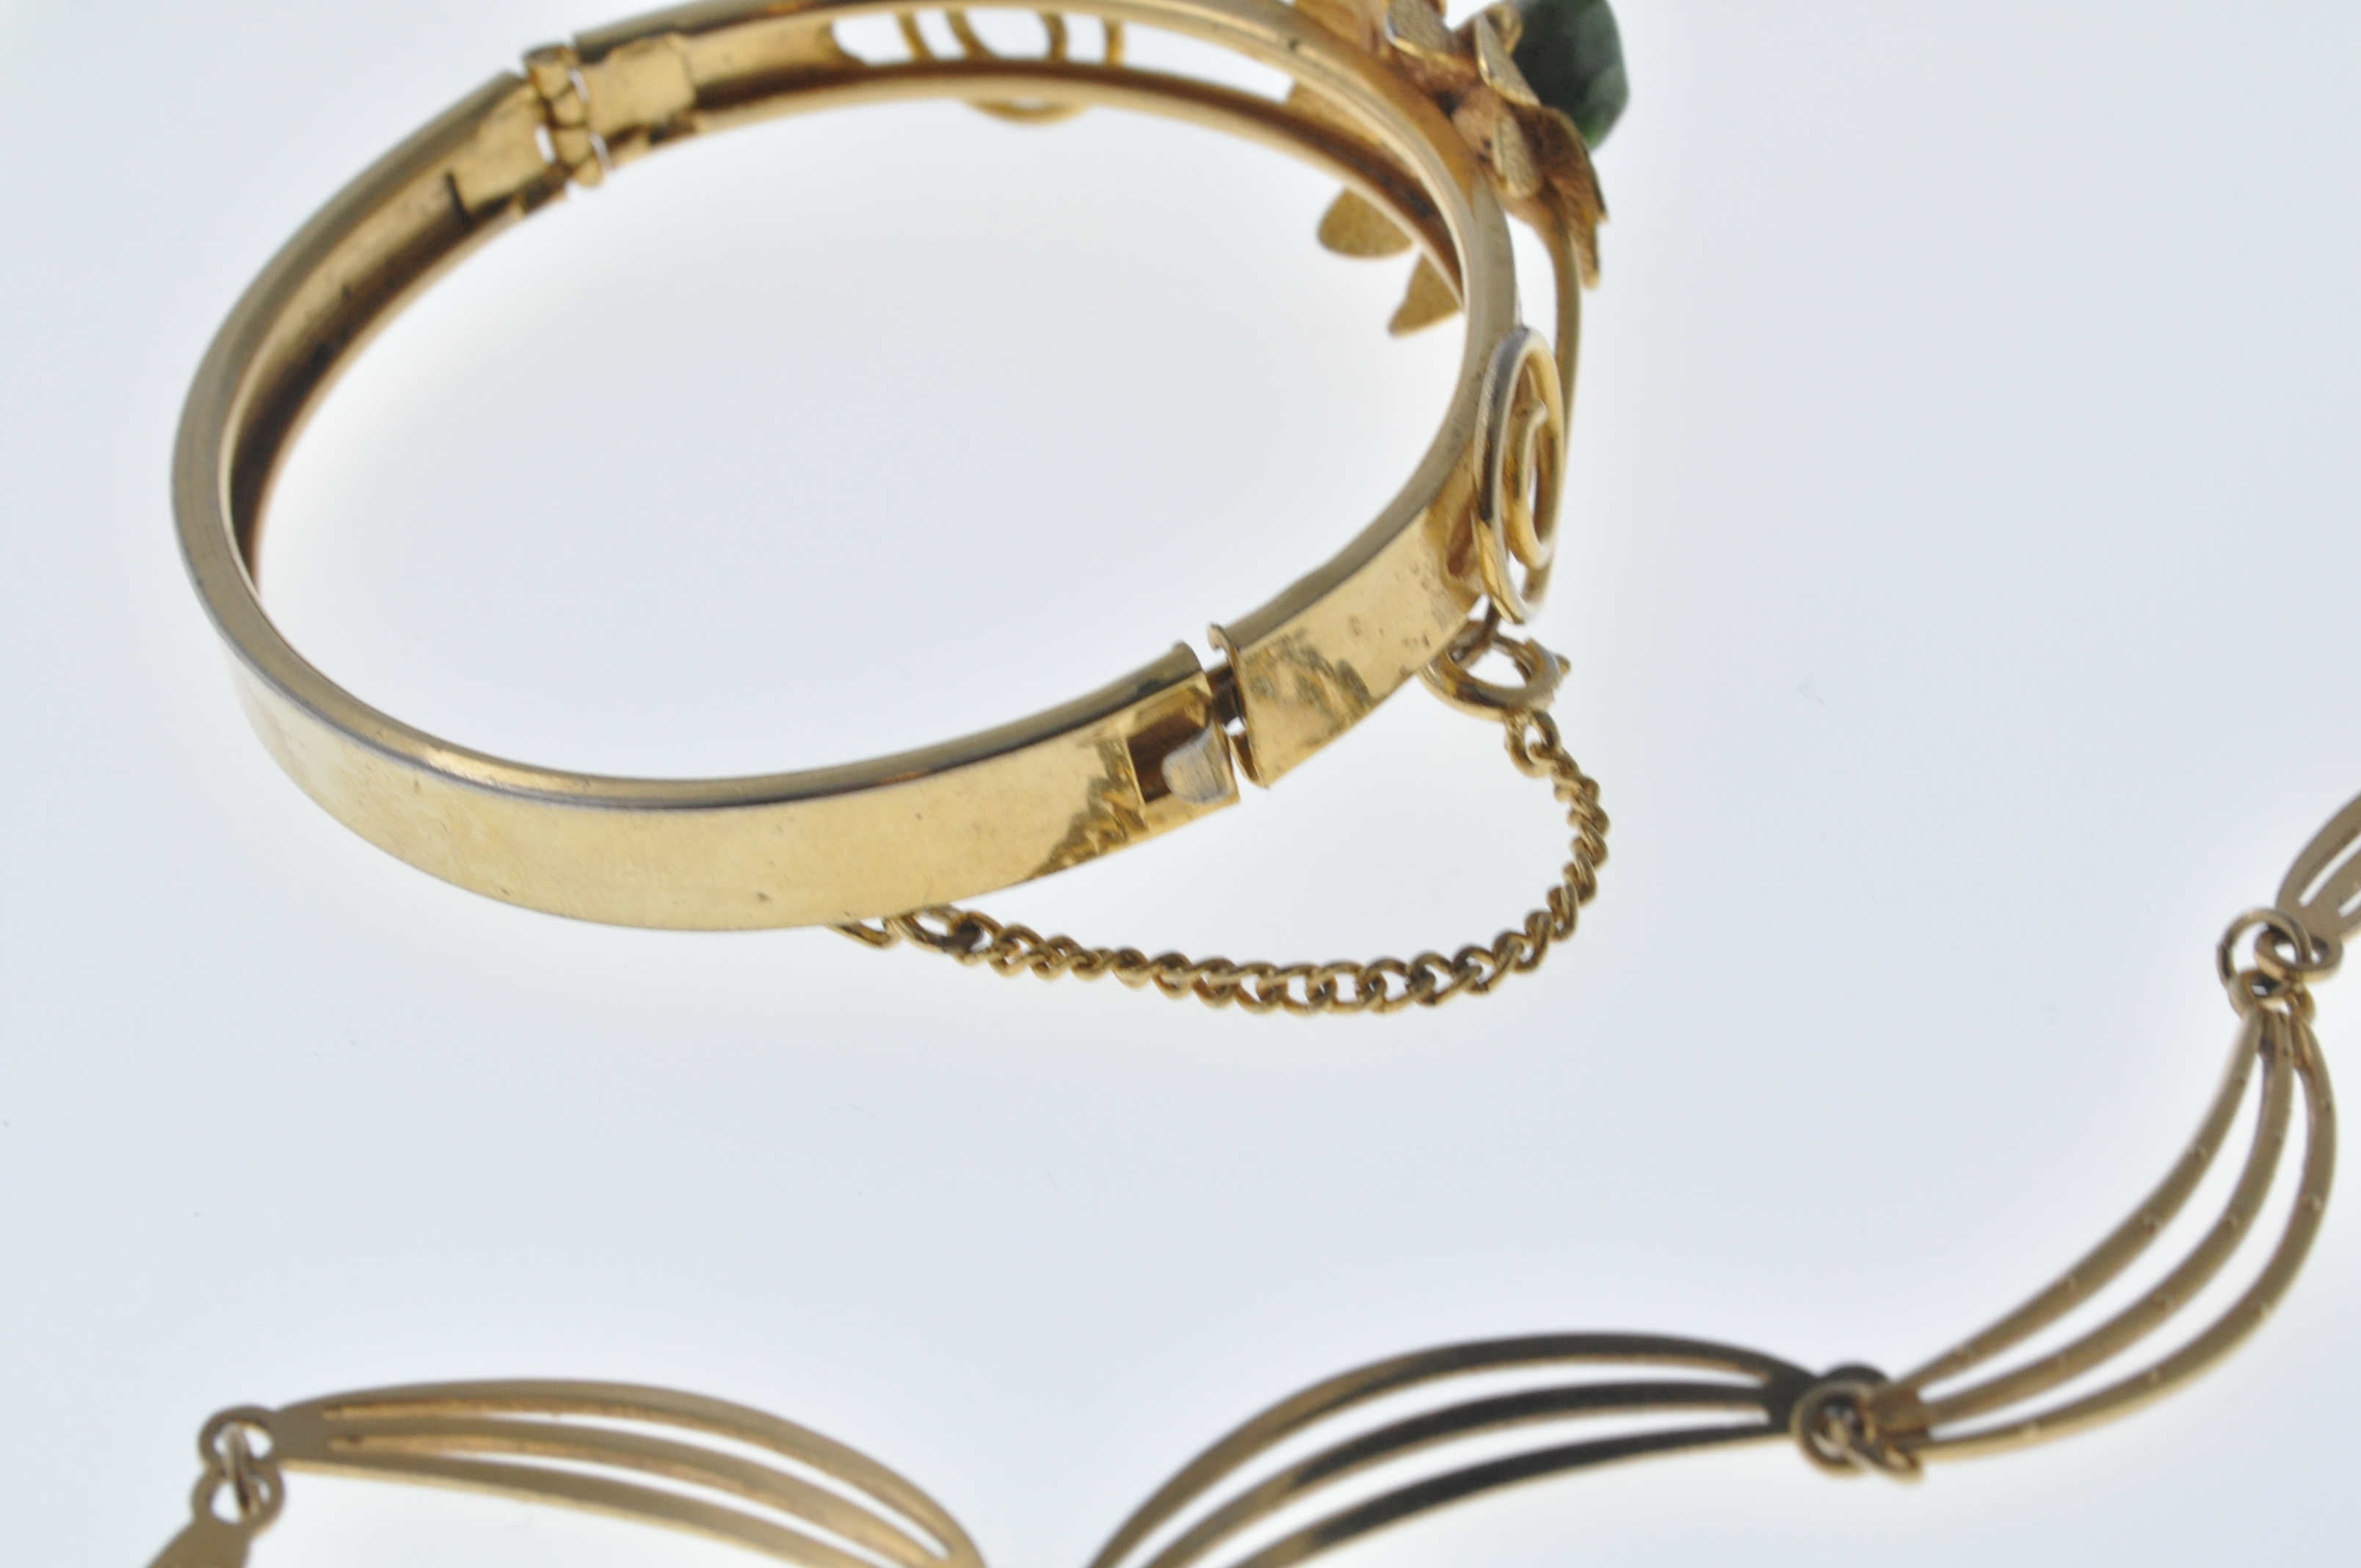 VINTAGE BANGLE AND NECKLACE - Image 5 of 9